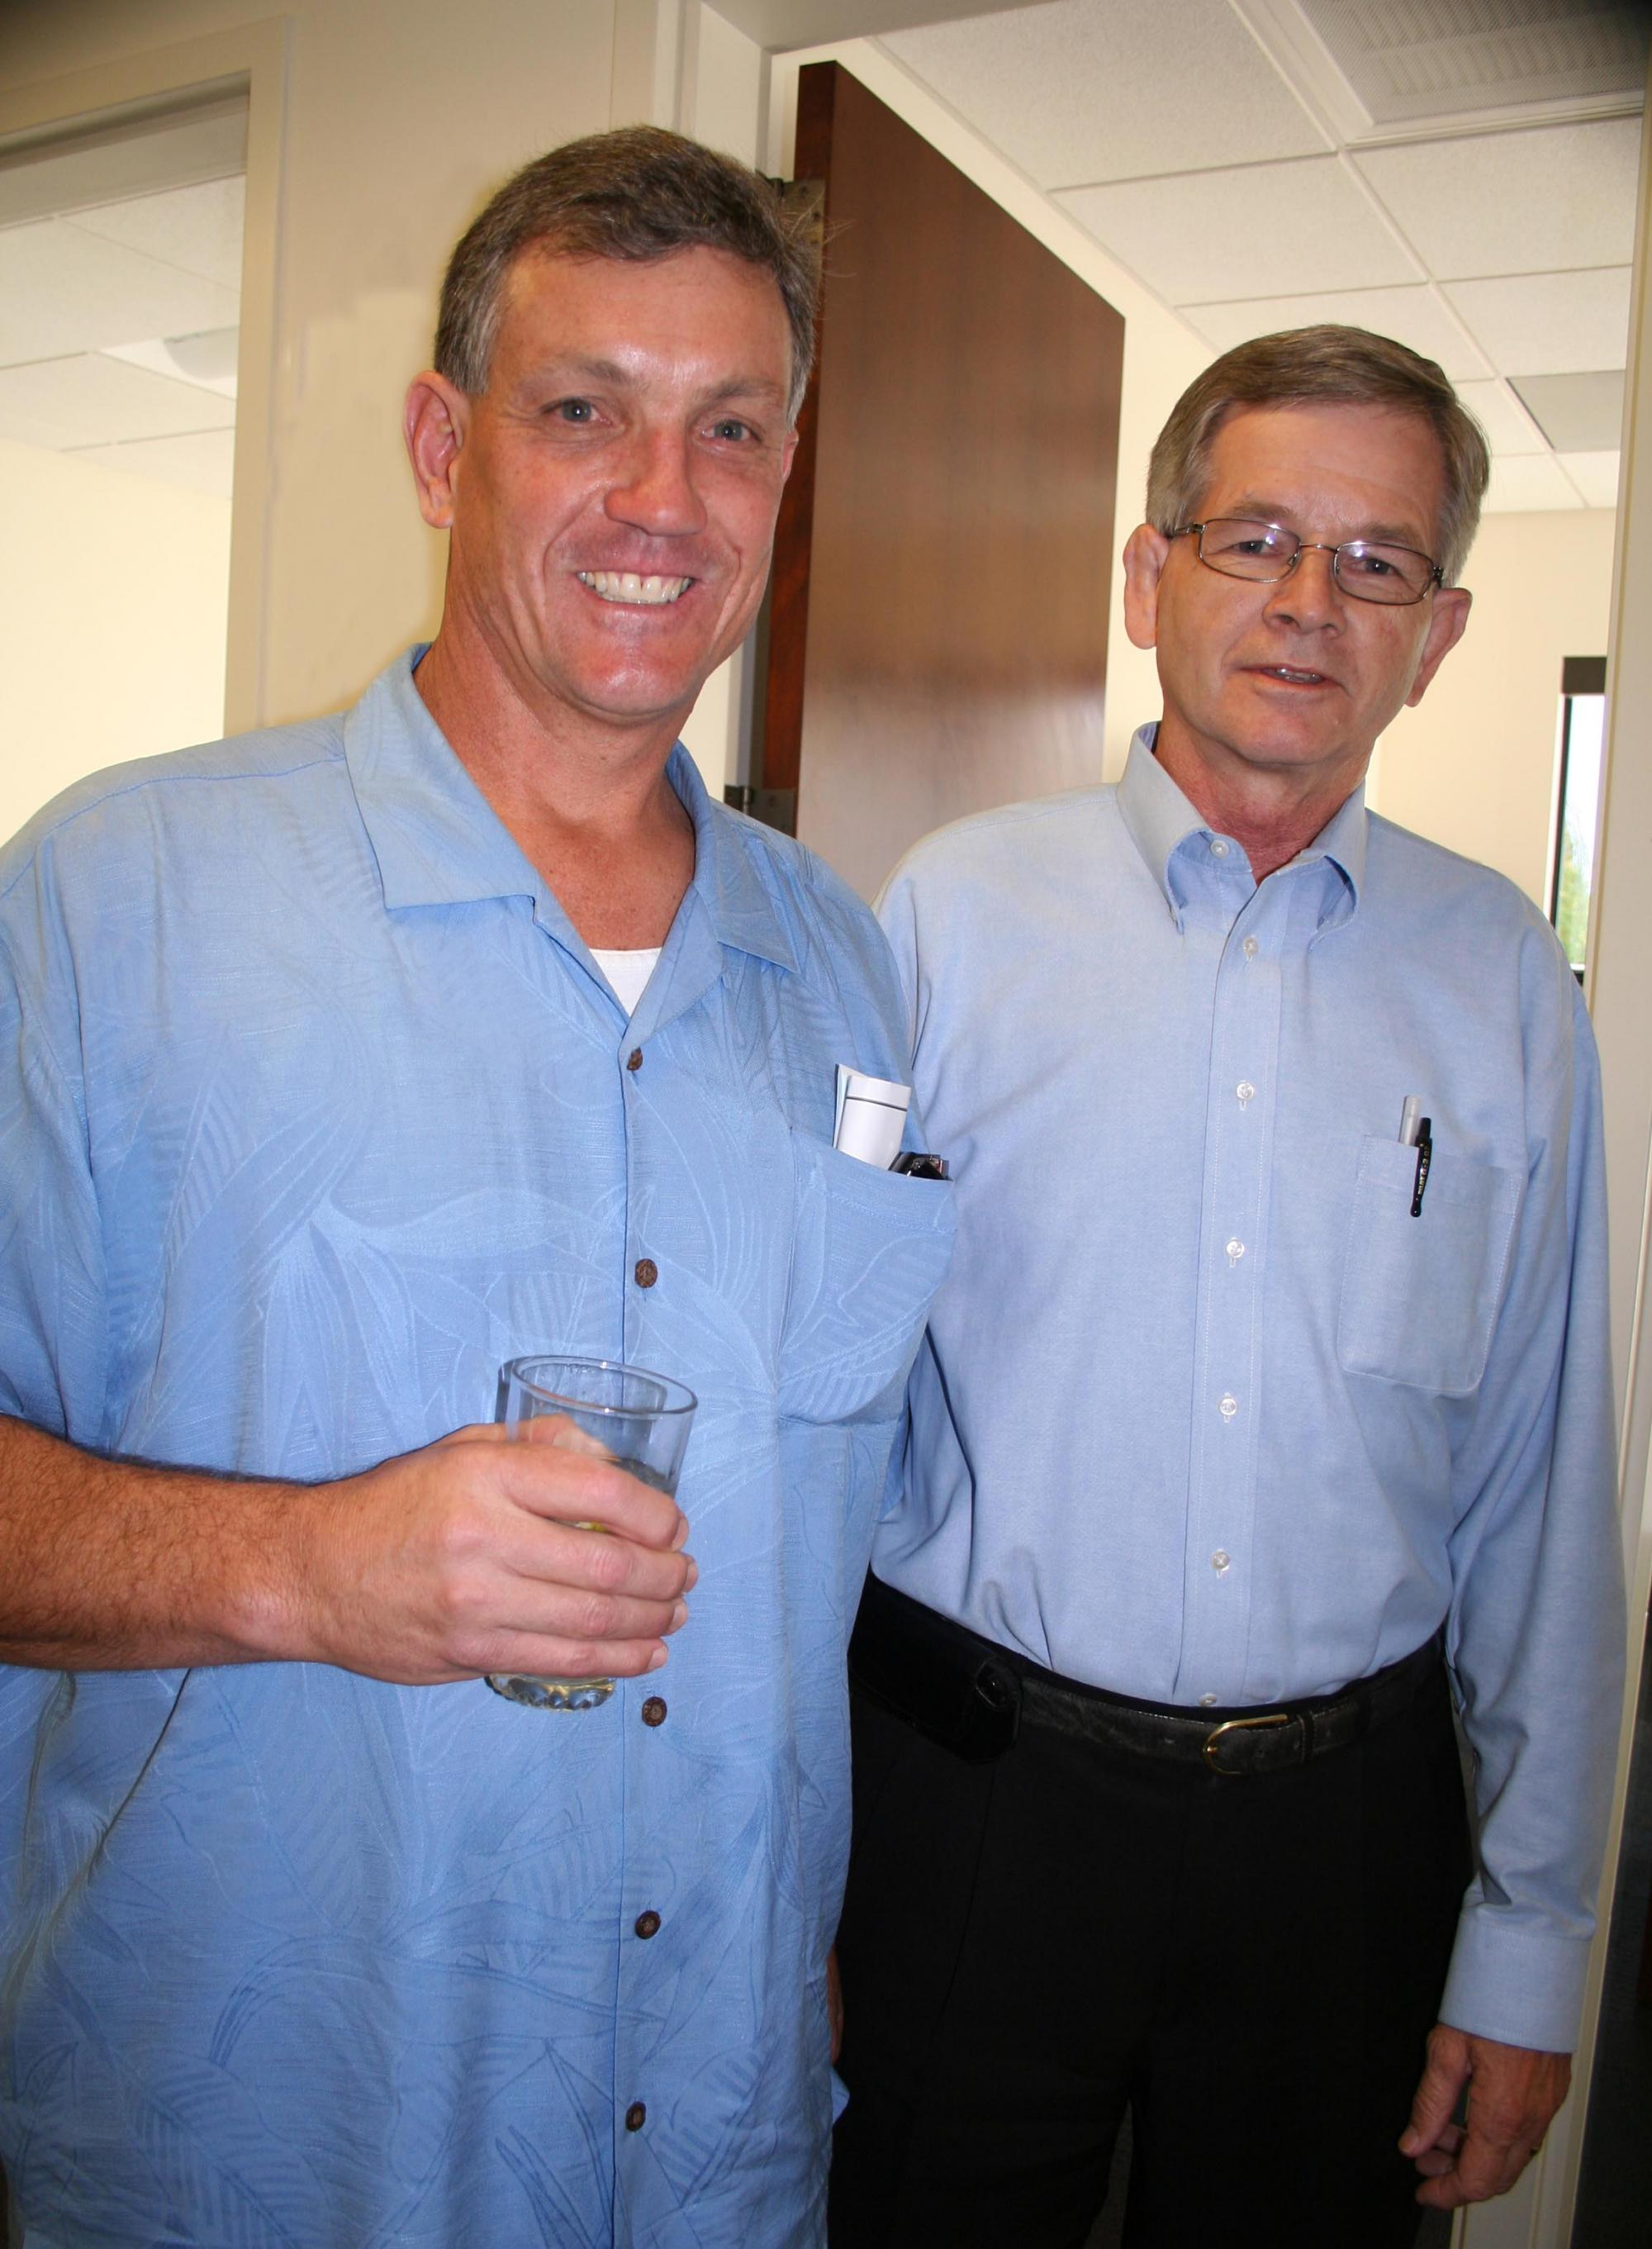 Kevin Shea (left), who graduated from SMC in 1979, was the construction supervisor for the Psychology Center. At the reception, he reconnected with Joe Kehoe (right), head of Facilities Services, who was his coach when he played football for Saint Mary's.